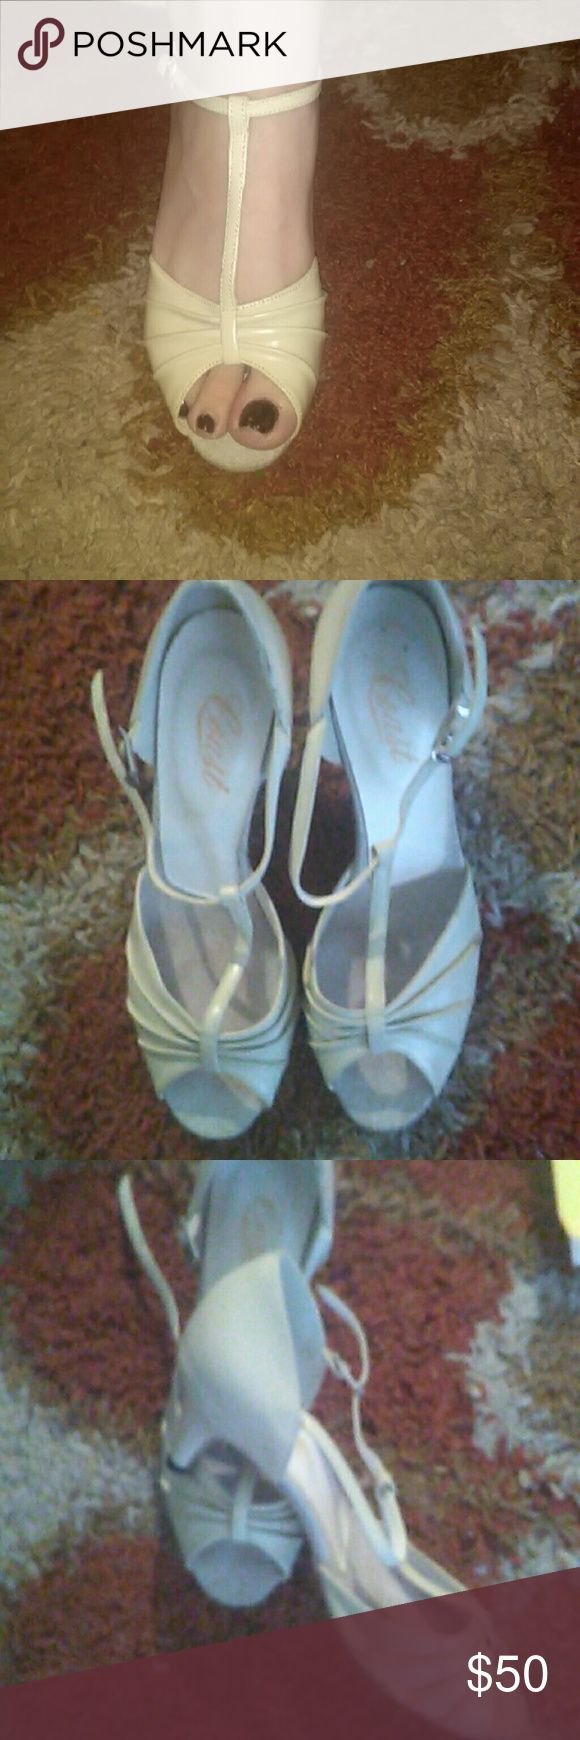 Coast Ballroom Dance shoes Amazing cream dance shoes gently loved originally $150. Coast Shoes Heels